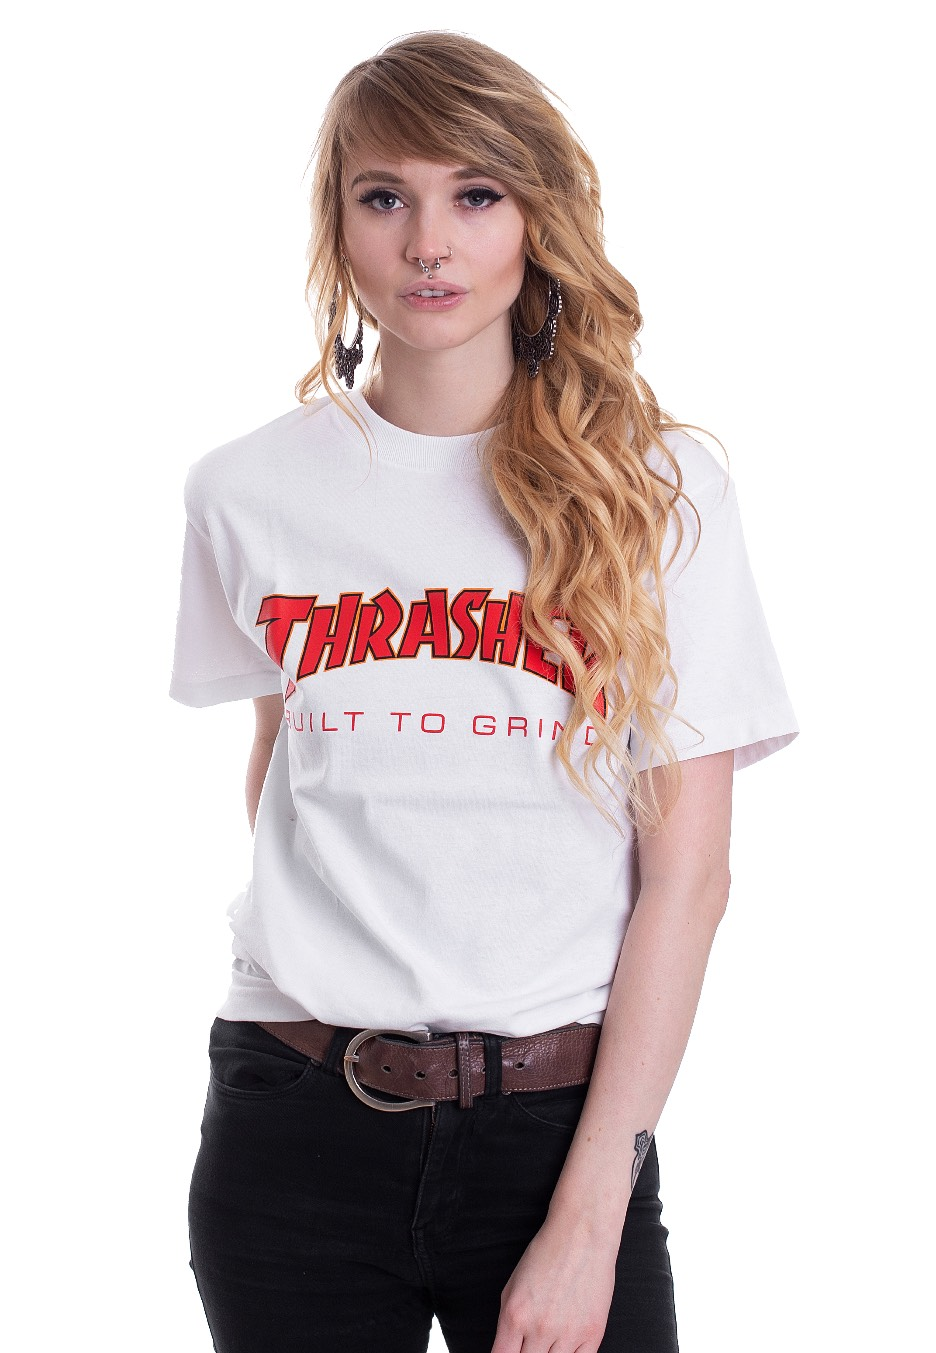 730829a020a6 Thrasher x Independent - Thrasher BTG White - T-Shirt - Streetwear Shop -  Impericon.com UK